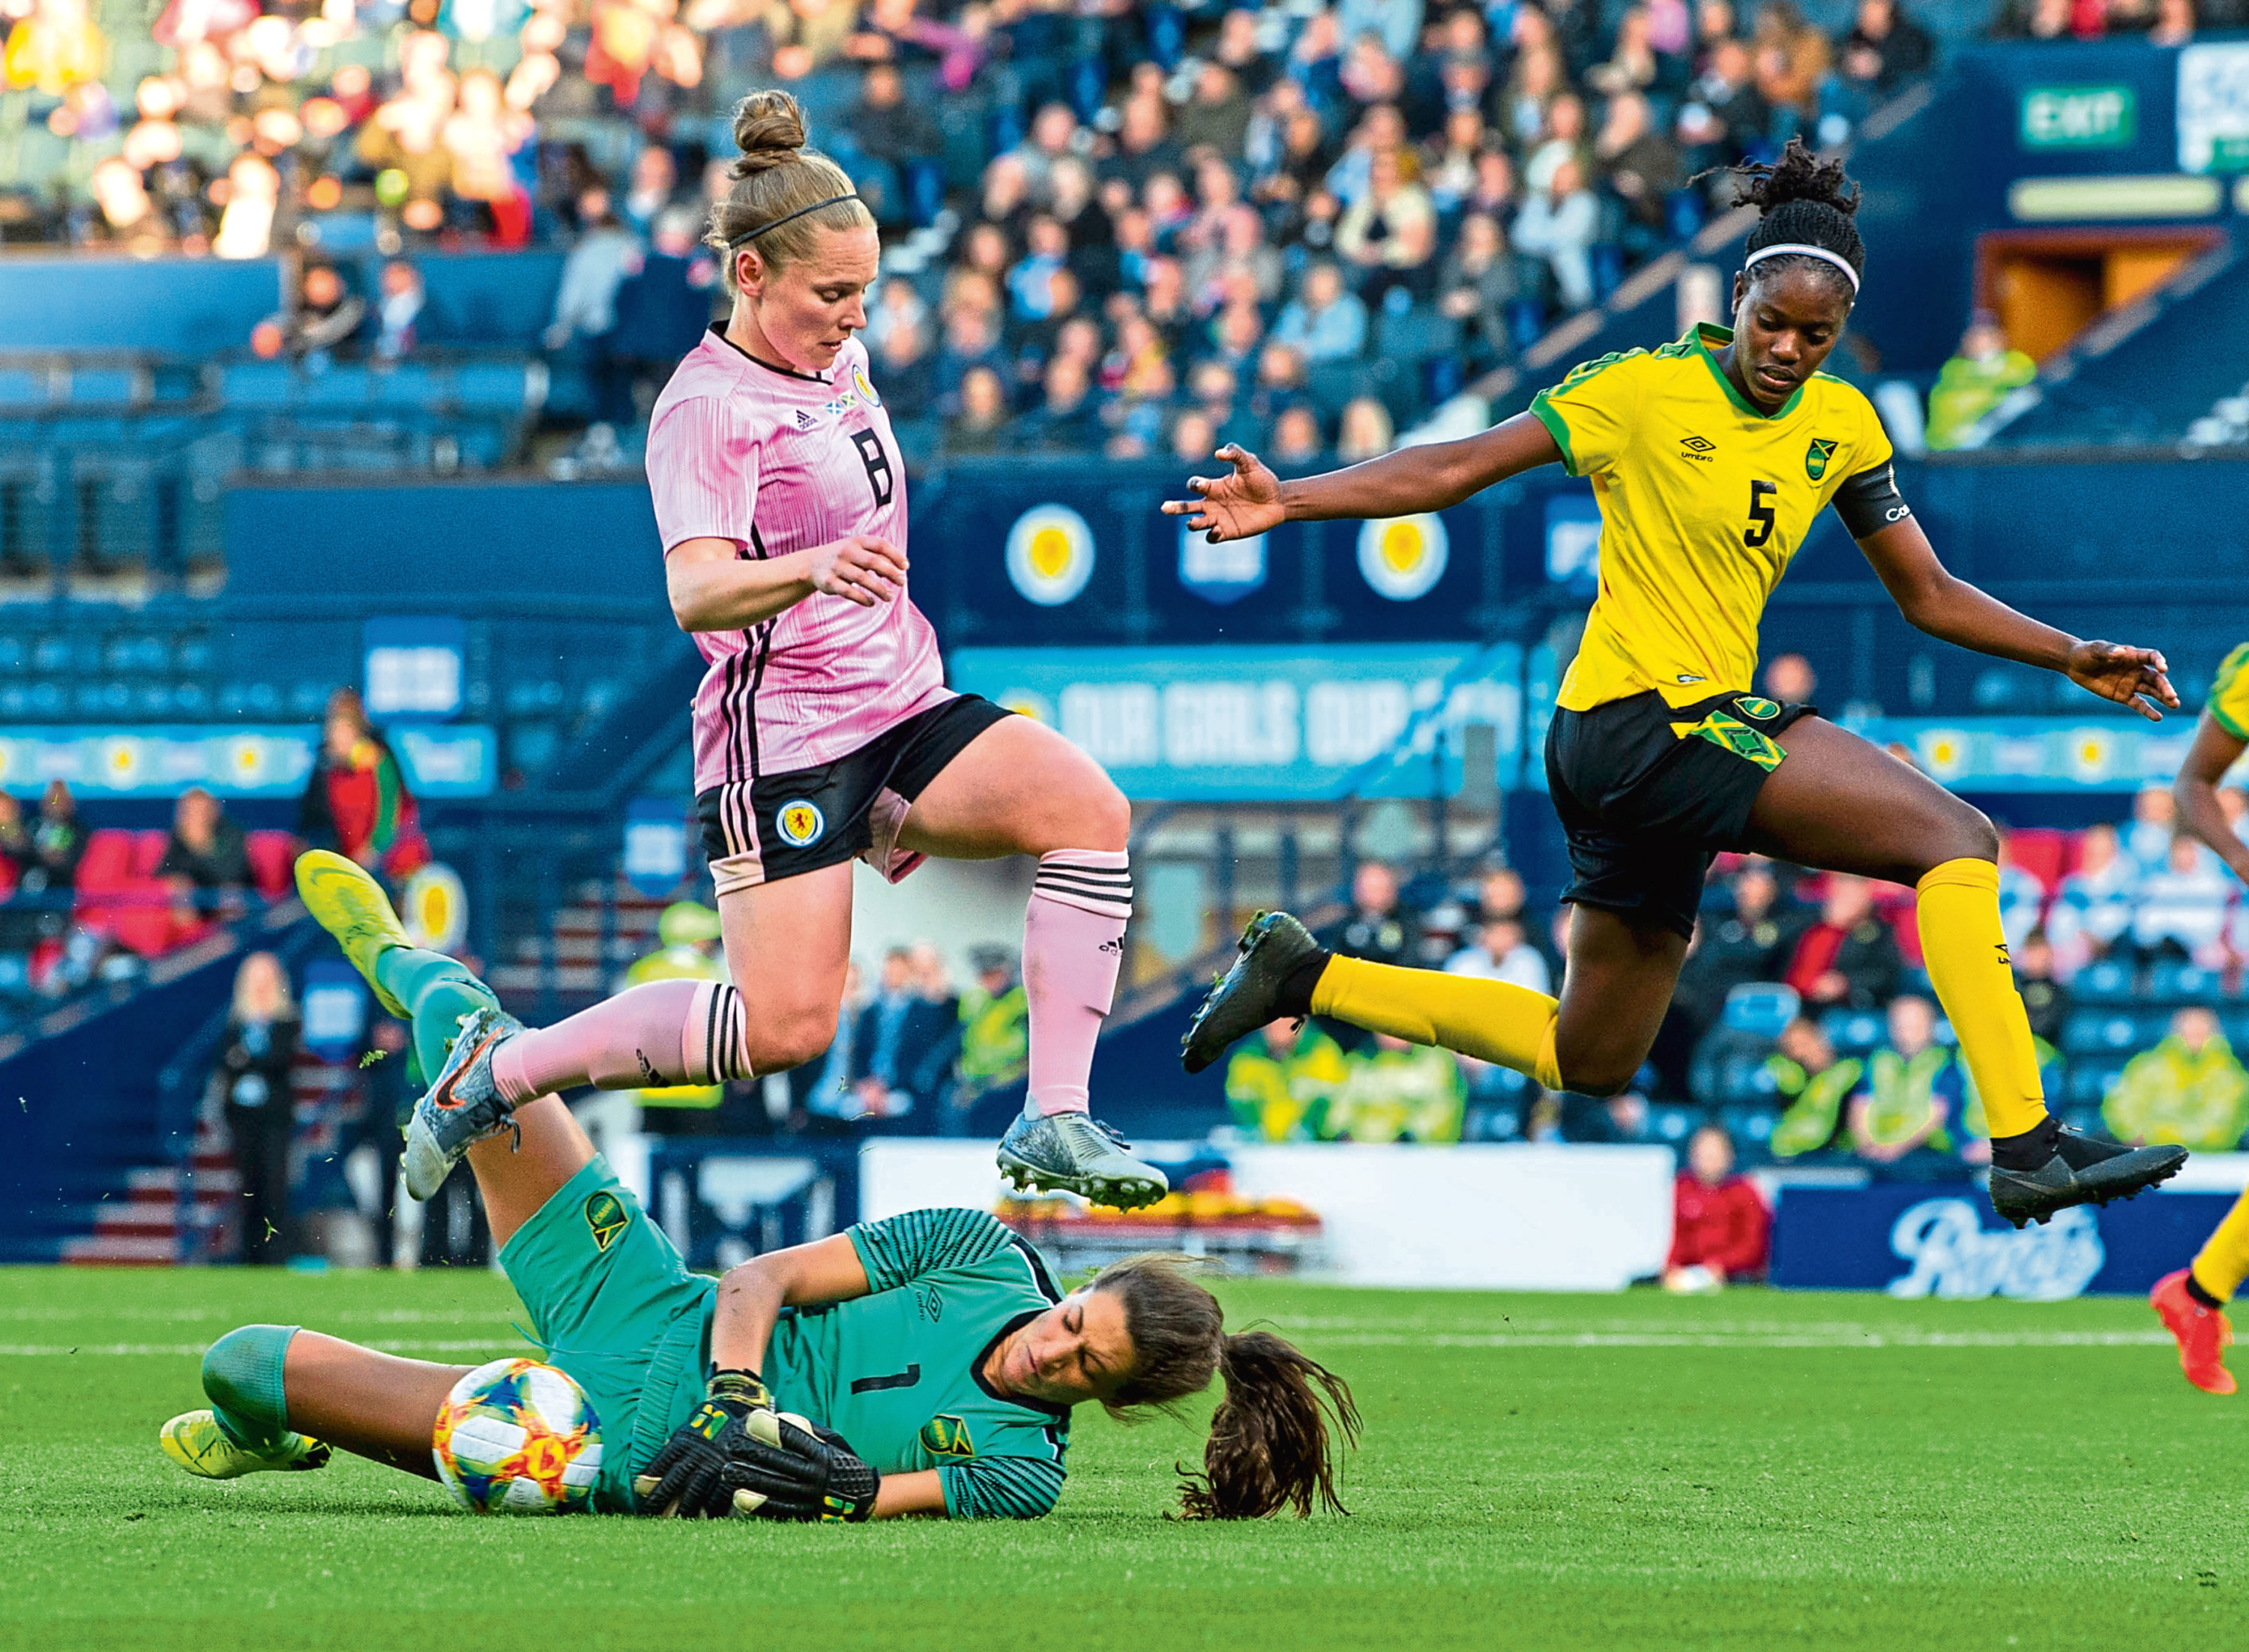 My friend and Scotland Kim Little team mate in action for the national team against Jamaica